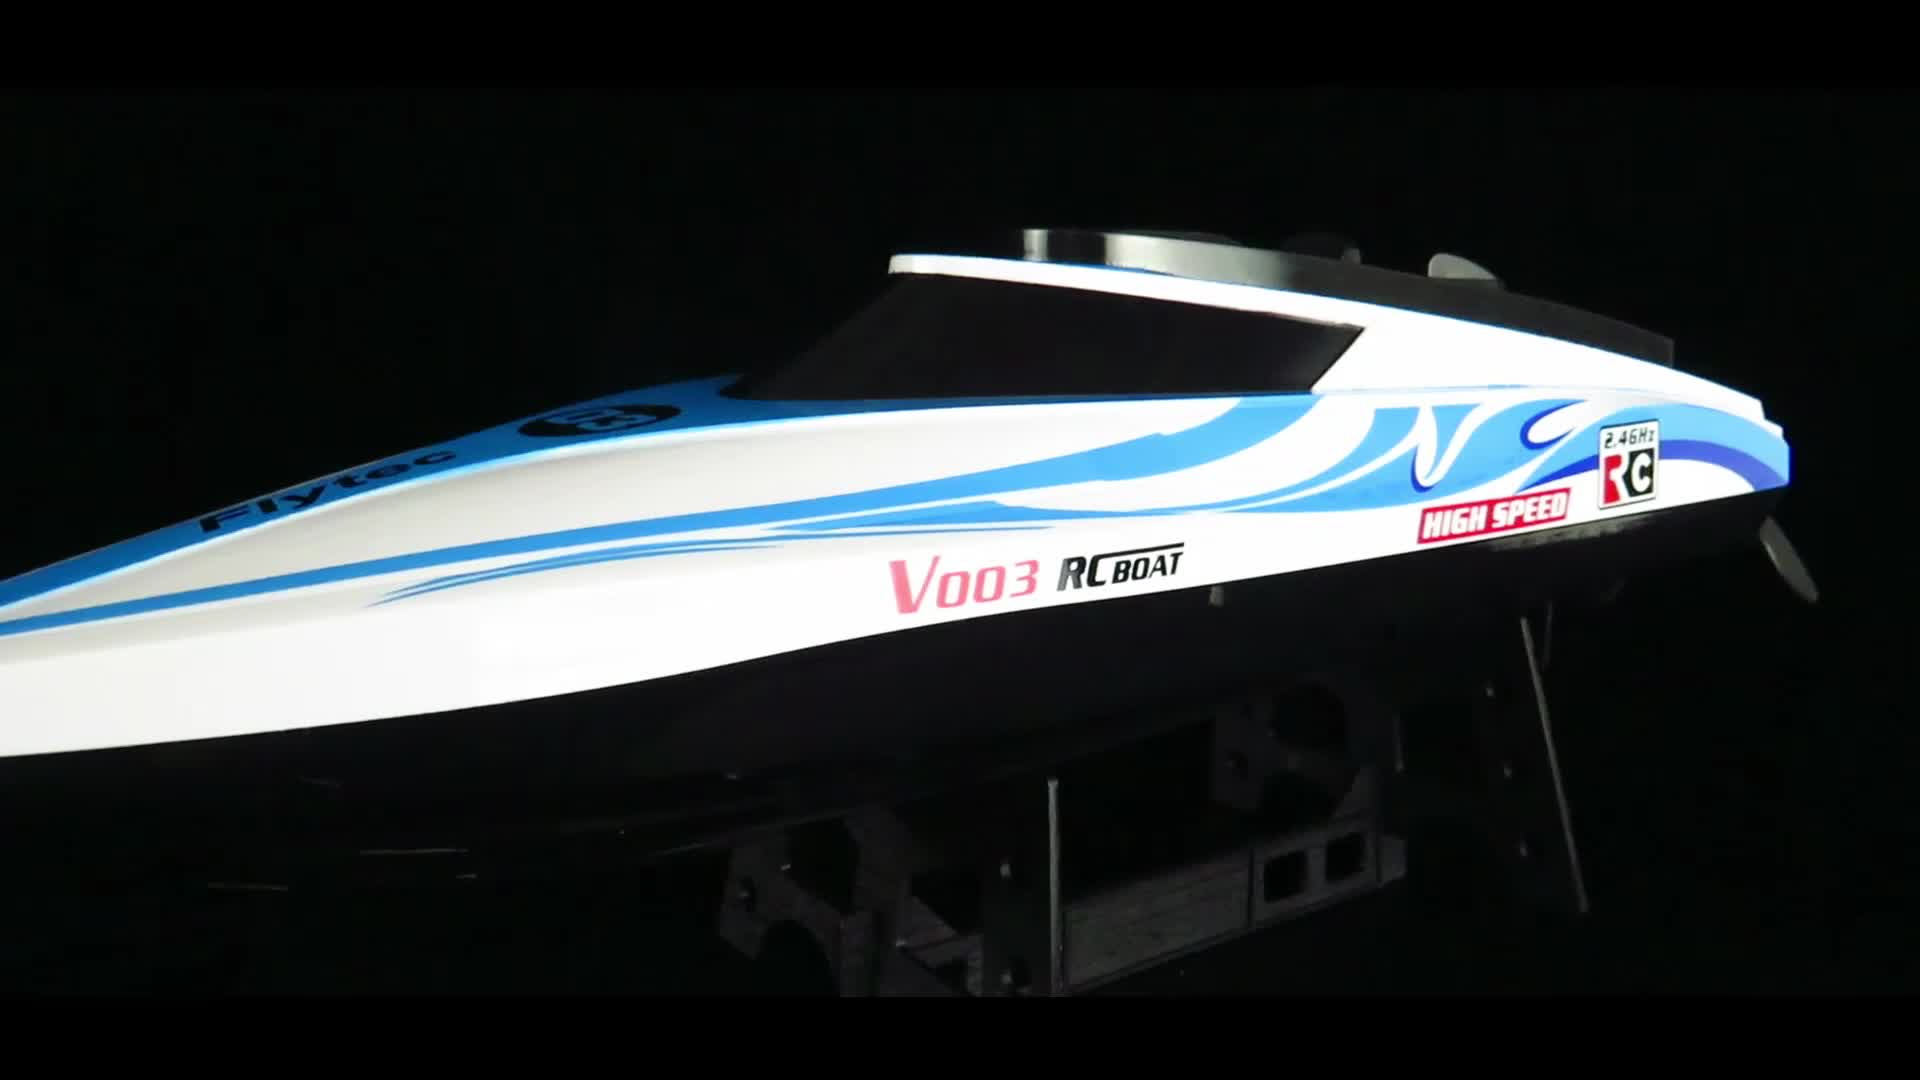 Flytec V003 2.4G 30KM/H High Speed Boat With Water Cooling System Radio Control Toy RC Boat for Kids